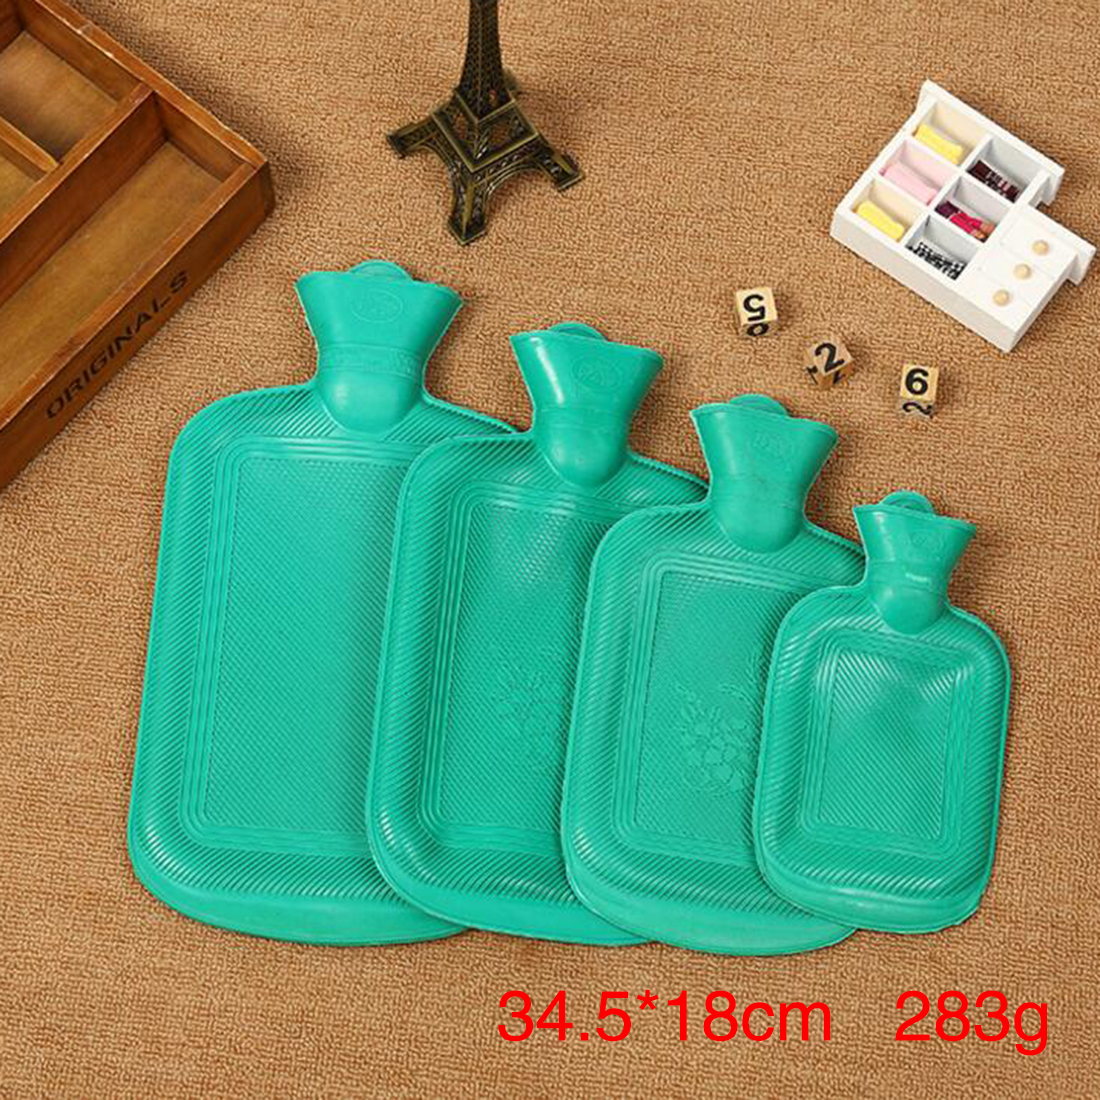 Hot Water Bottle Thick High Density Rubber Hot Water Bag Hand Warming Water Bottles Winter Hot Water Bags Bottle random color hot winter